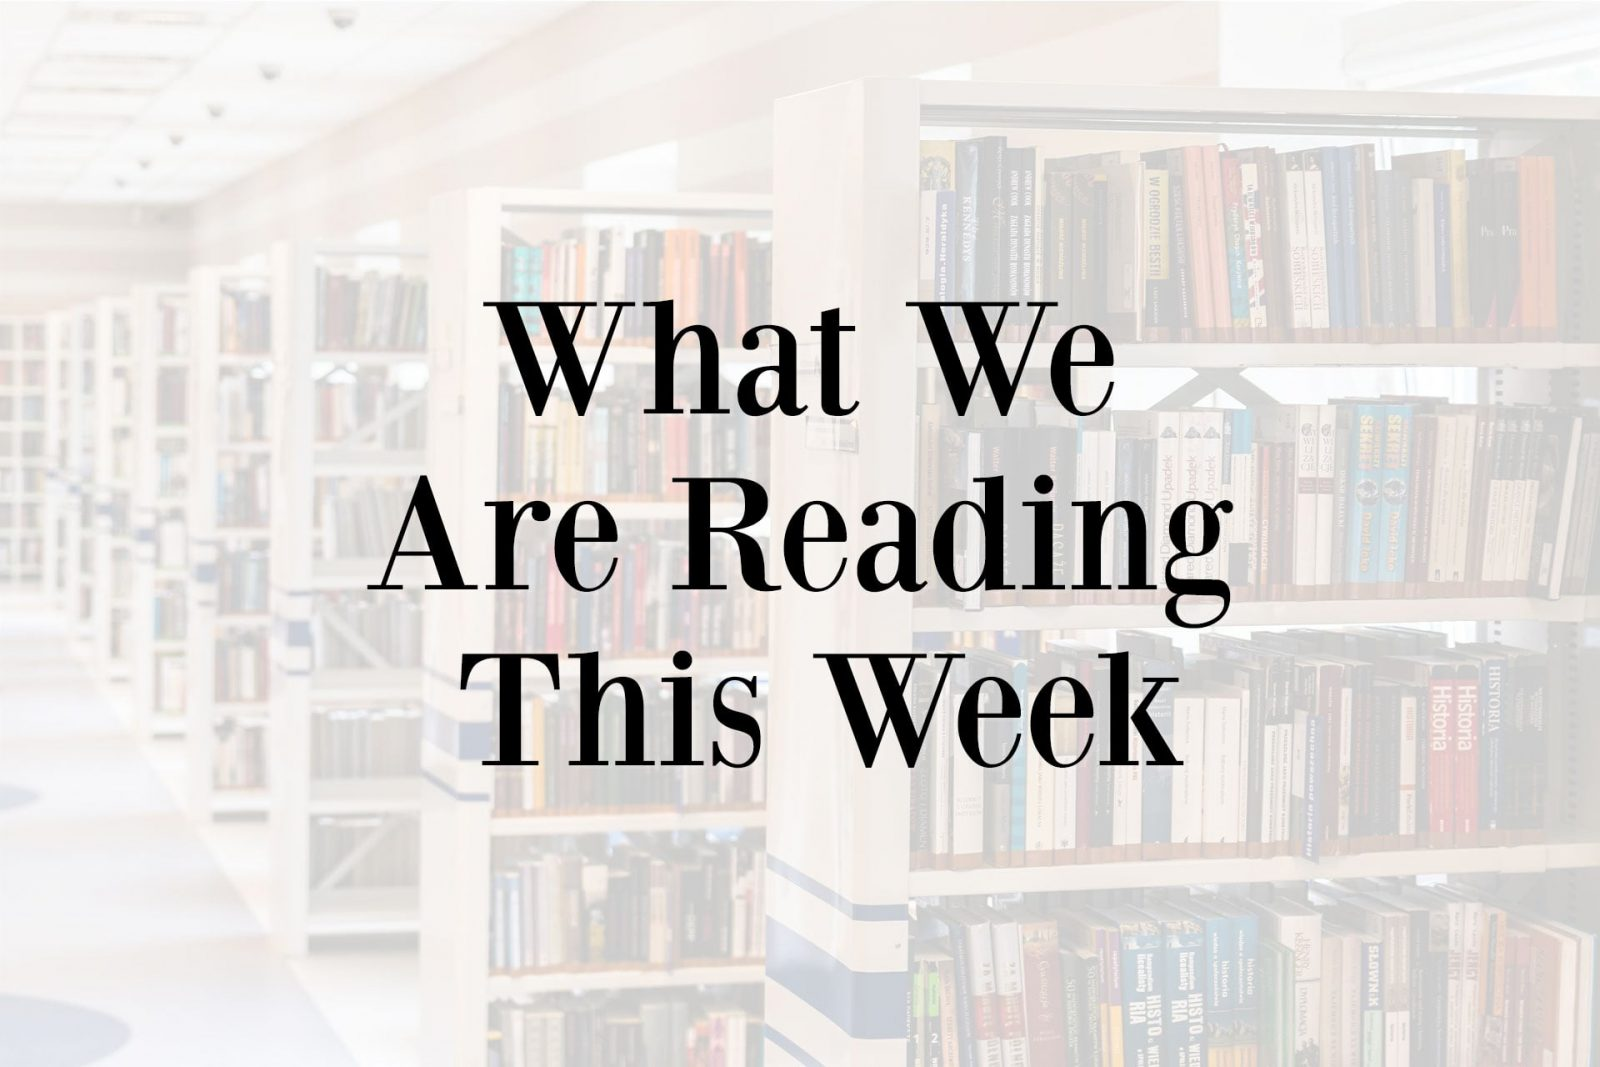 What We Are Reading This Week